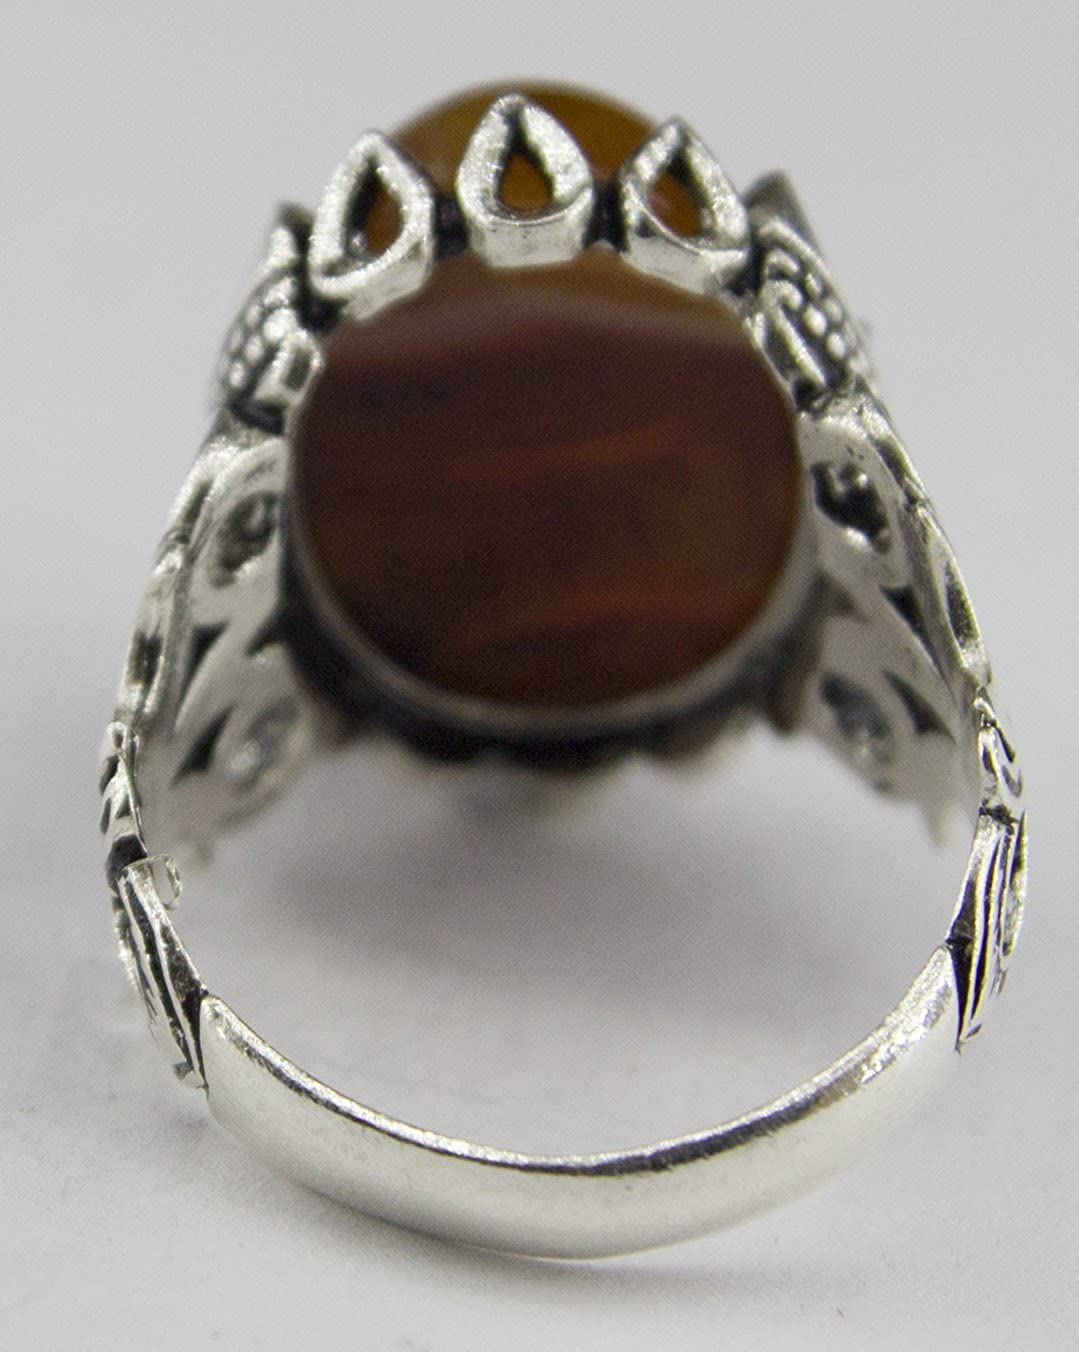 Falcon Jewelry Sterling Silver Men Ring Handmade Similar Patterned Stone Will be Sent Natural Red Agate Gemstone